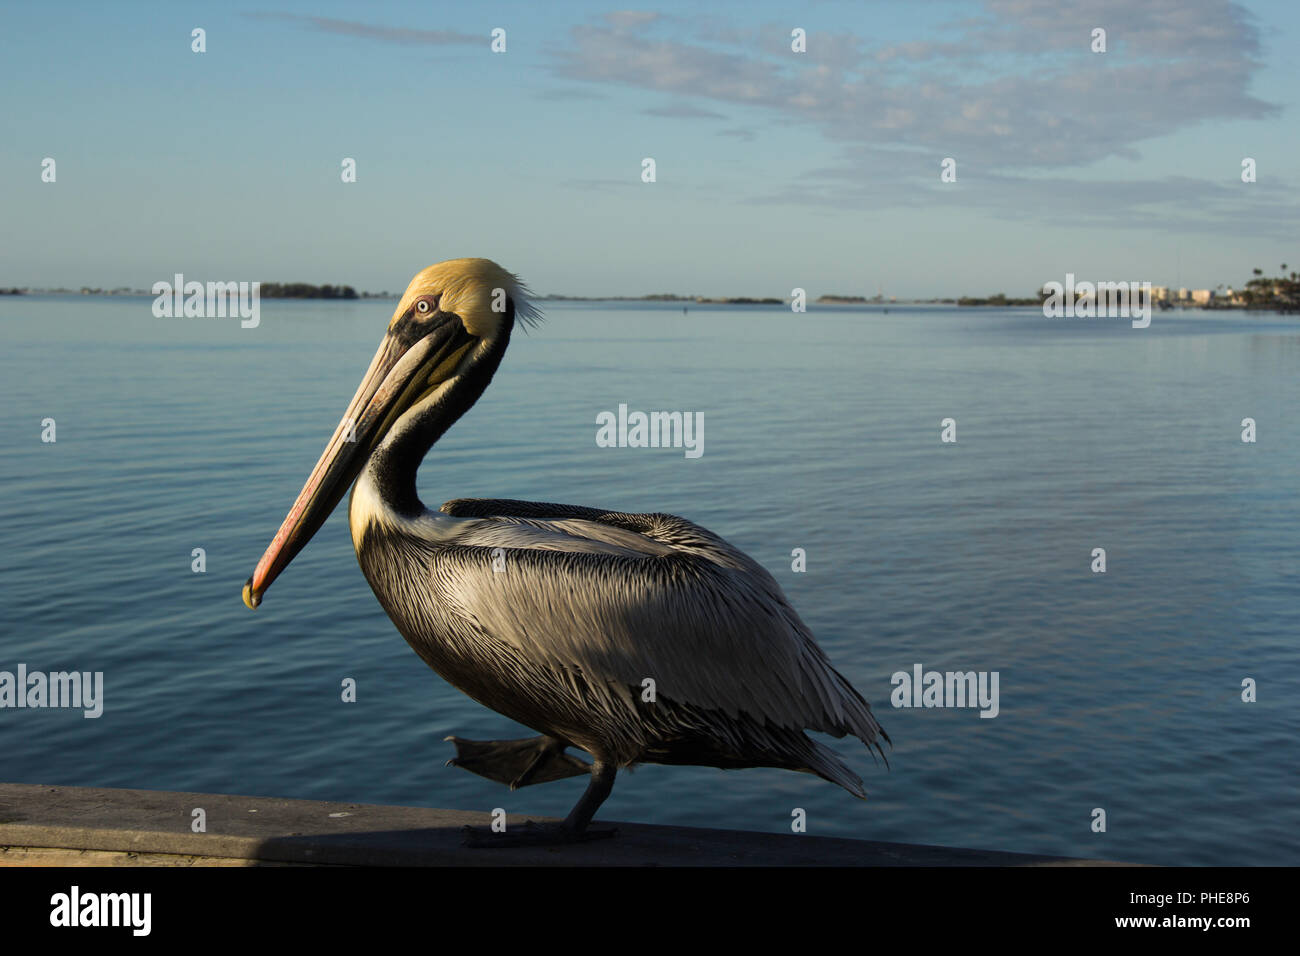 front-lit pelican standing with calm ocean background - Stock Image